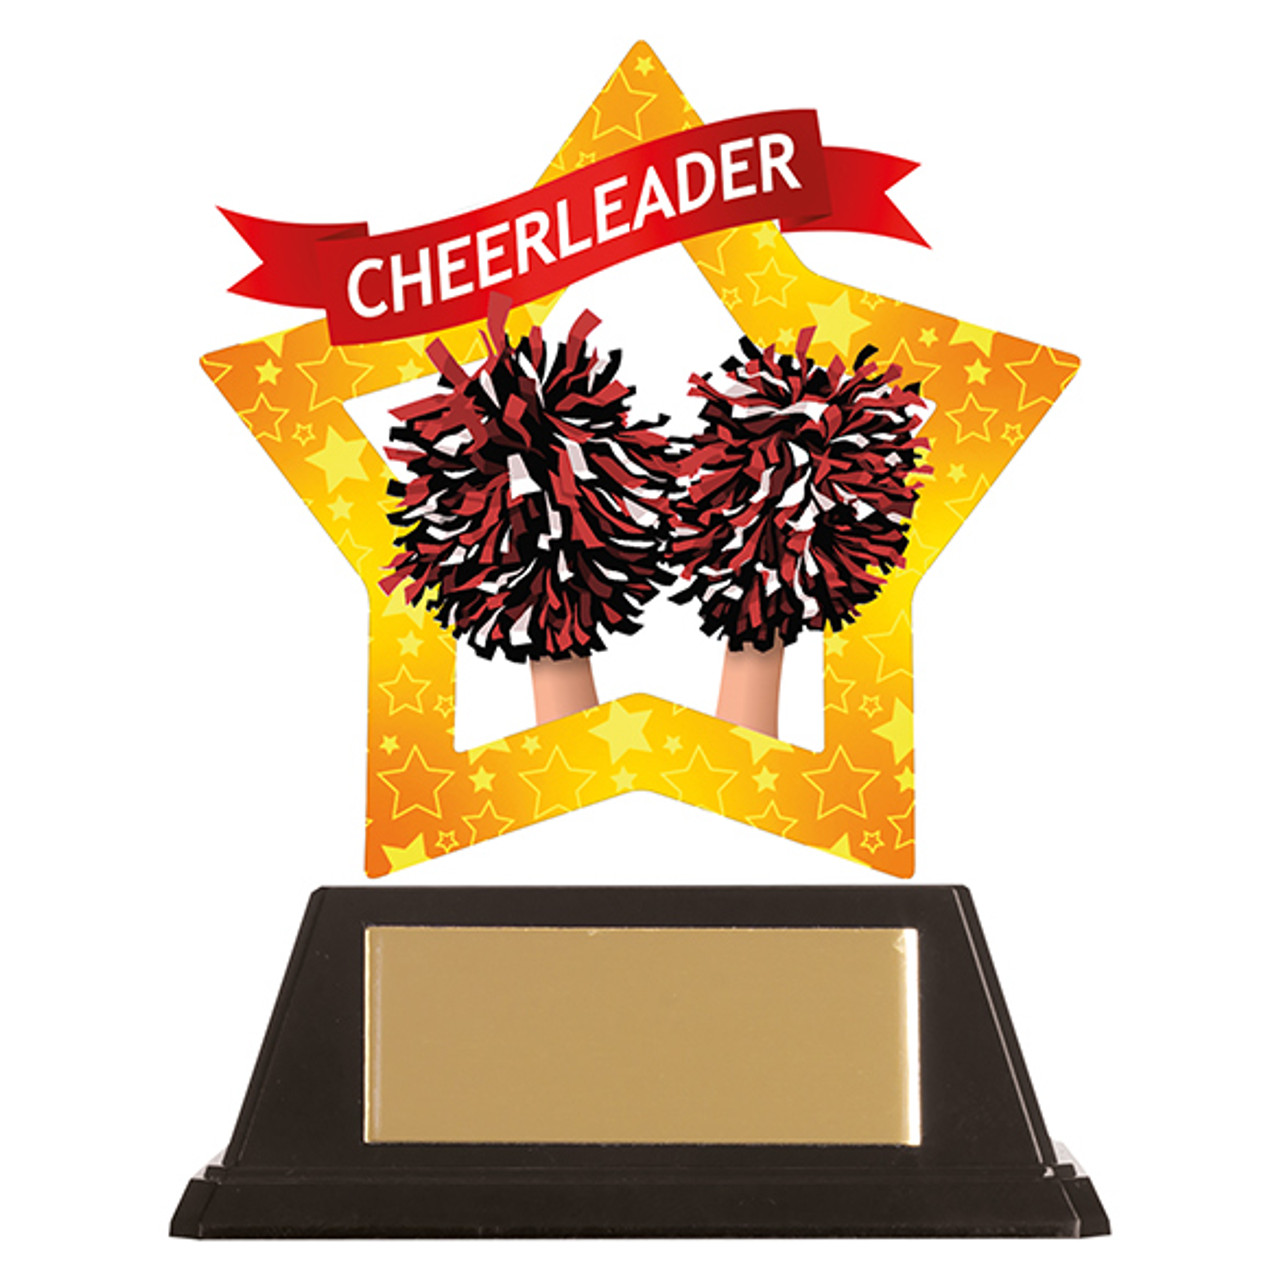 Cheerleader acrylic mini-star award at 1st Place 4 Trophies